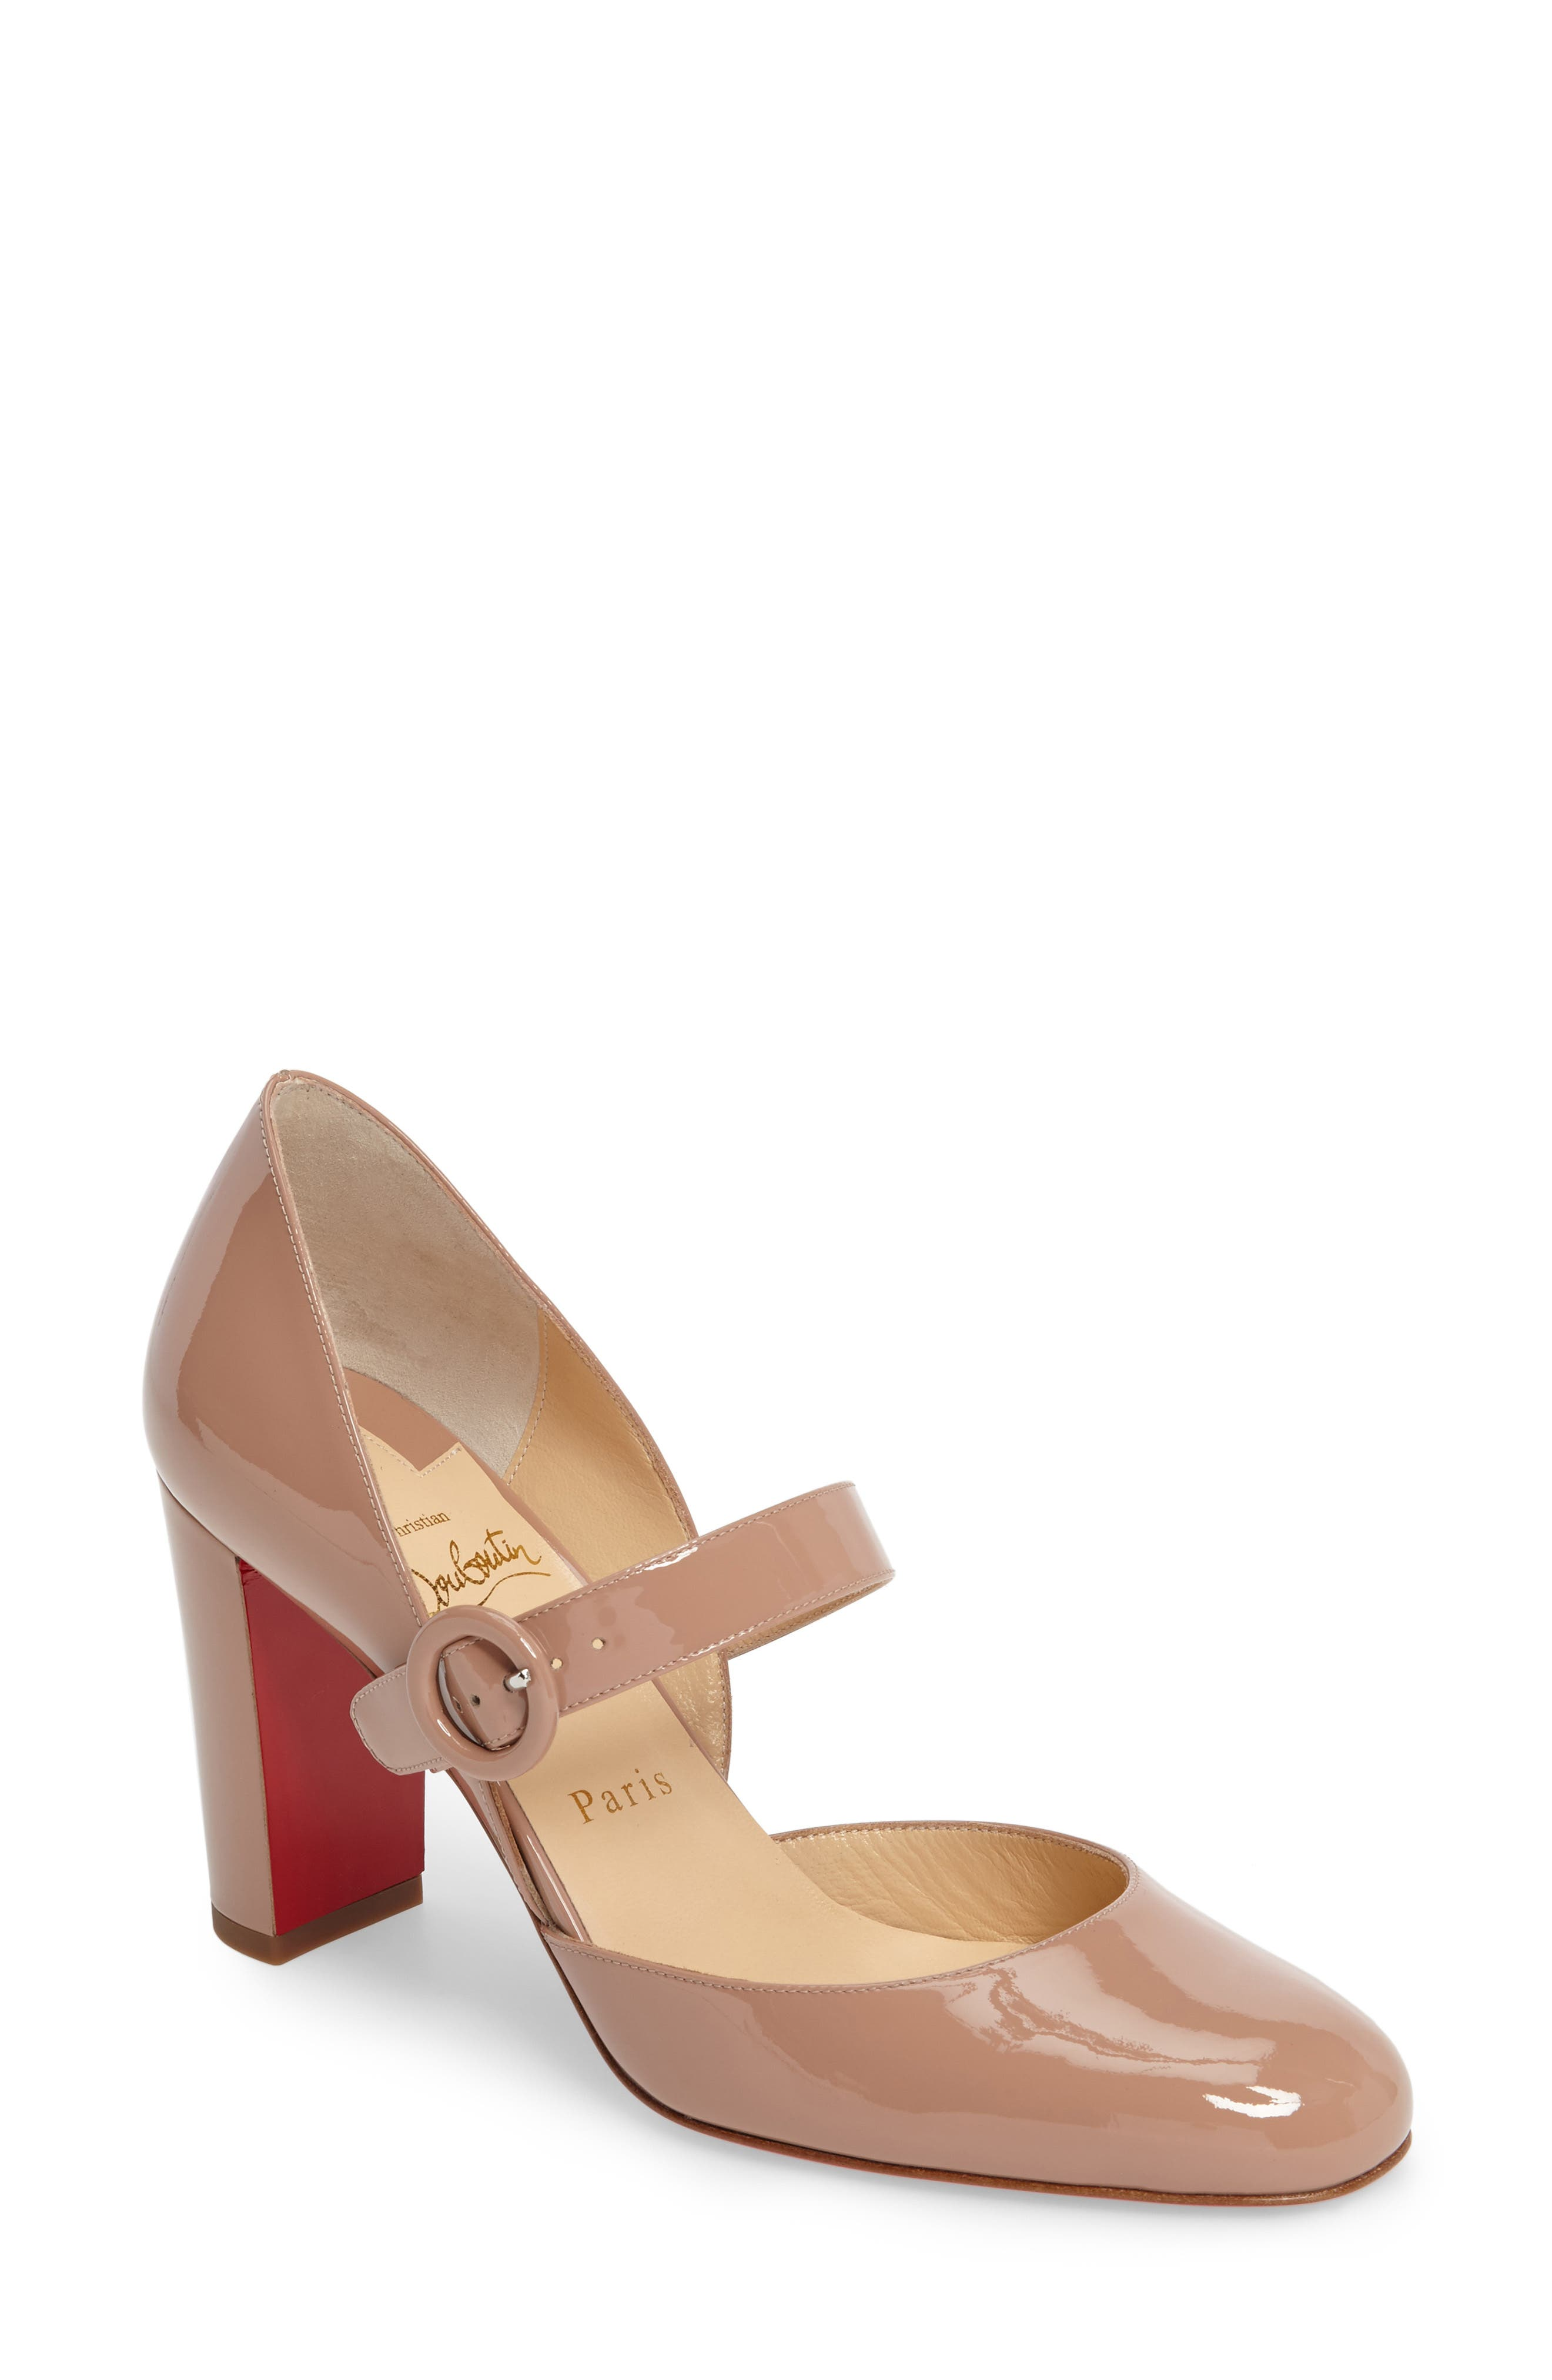 Main Image - Christian Louboutin Miss Kawa Mary Jane Pump